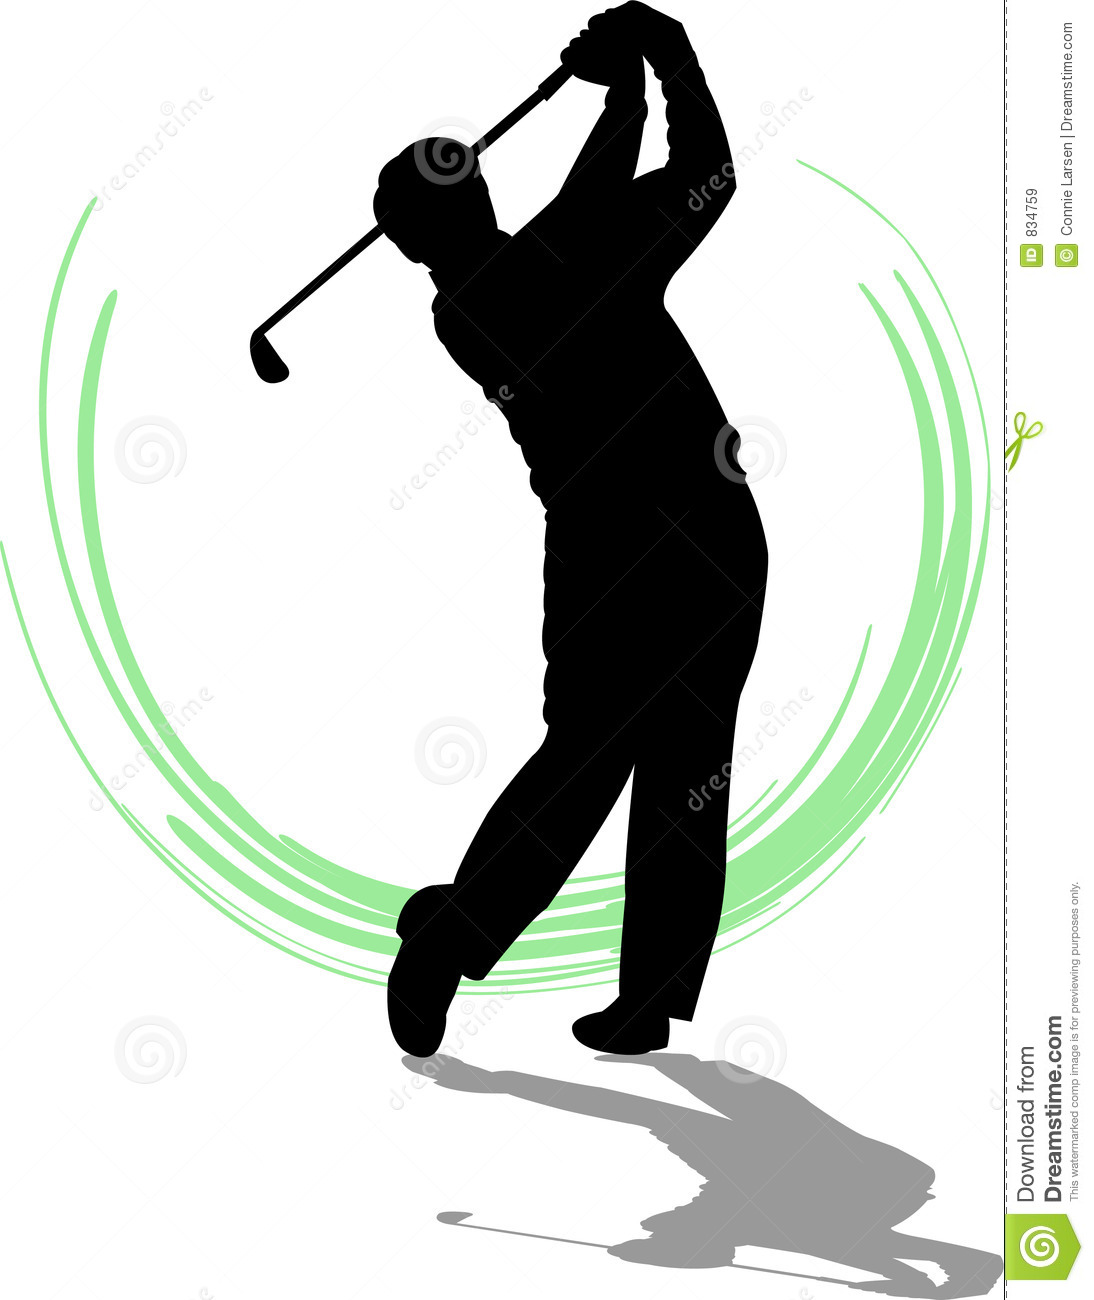 Golf man clipart free Men clipart golf - 107 transparent clip arts, images and pictures ... free